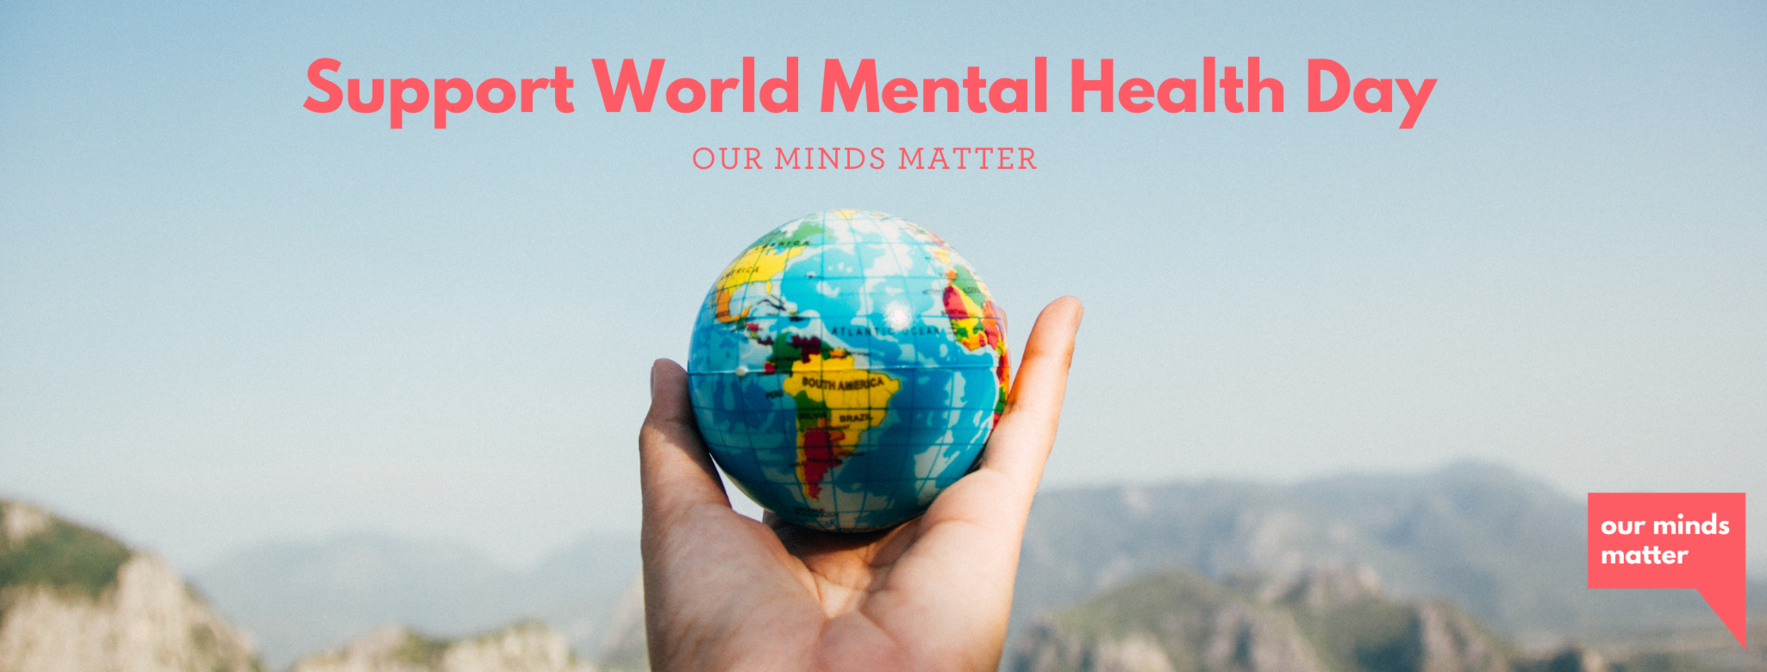 Lets Raise $2,000 For World Mental Health Day image